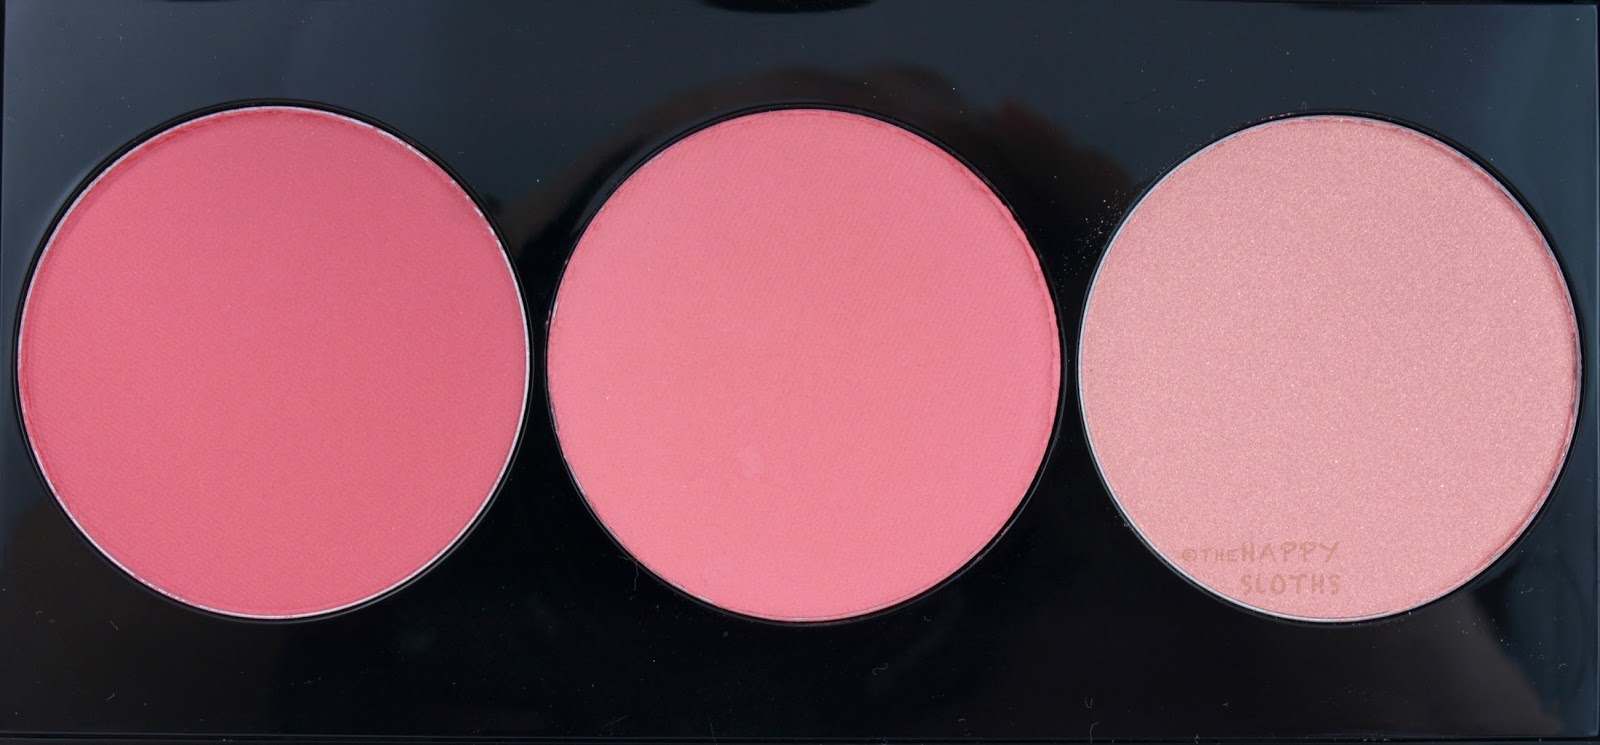 "Smashbox L.A. Lights Blush & Highlight Palette in ""Pacific Coast Pink"": Review and Swatches"